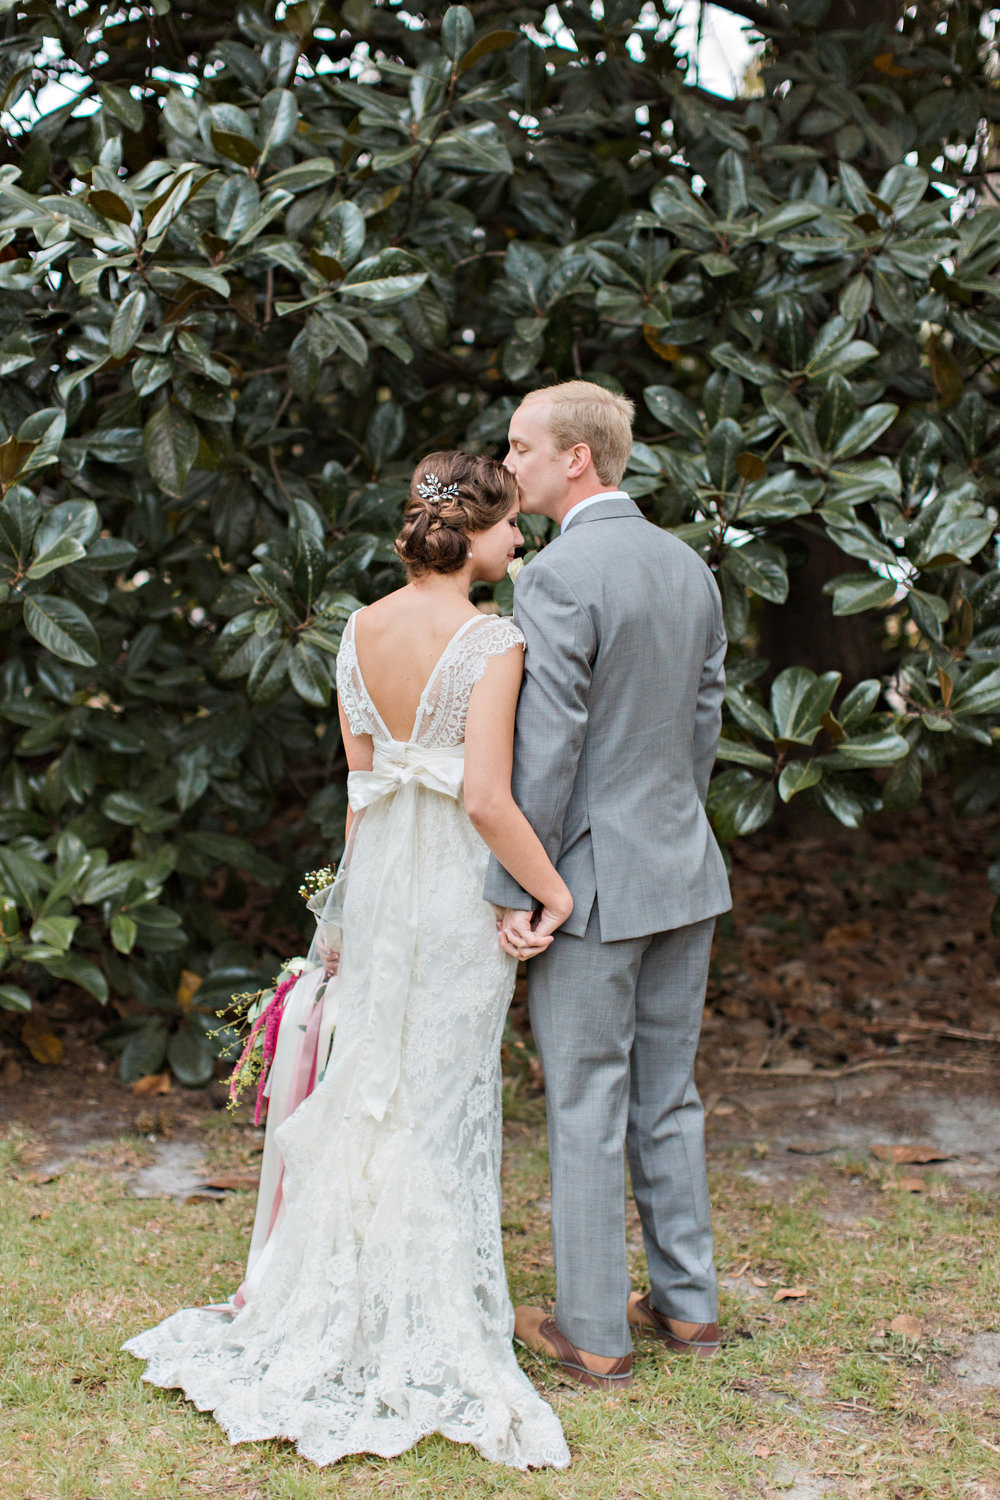 kayla-cody-katie-mcgee-photography-ivory-and-beau-bridal-boutique-anna-campbell-thalia-lace-mermaid-anna-campbell-bridal-savannah-bridal-boutique-savannah-wedding-savannah-weddings-11.jpg